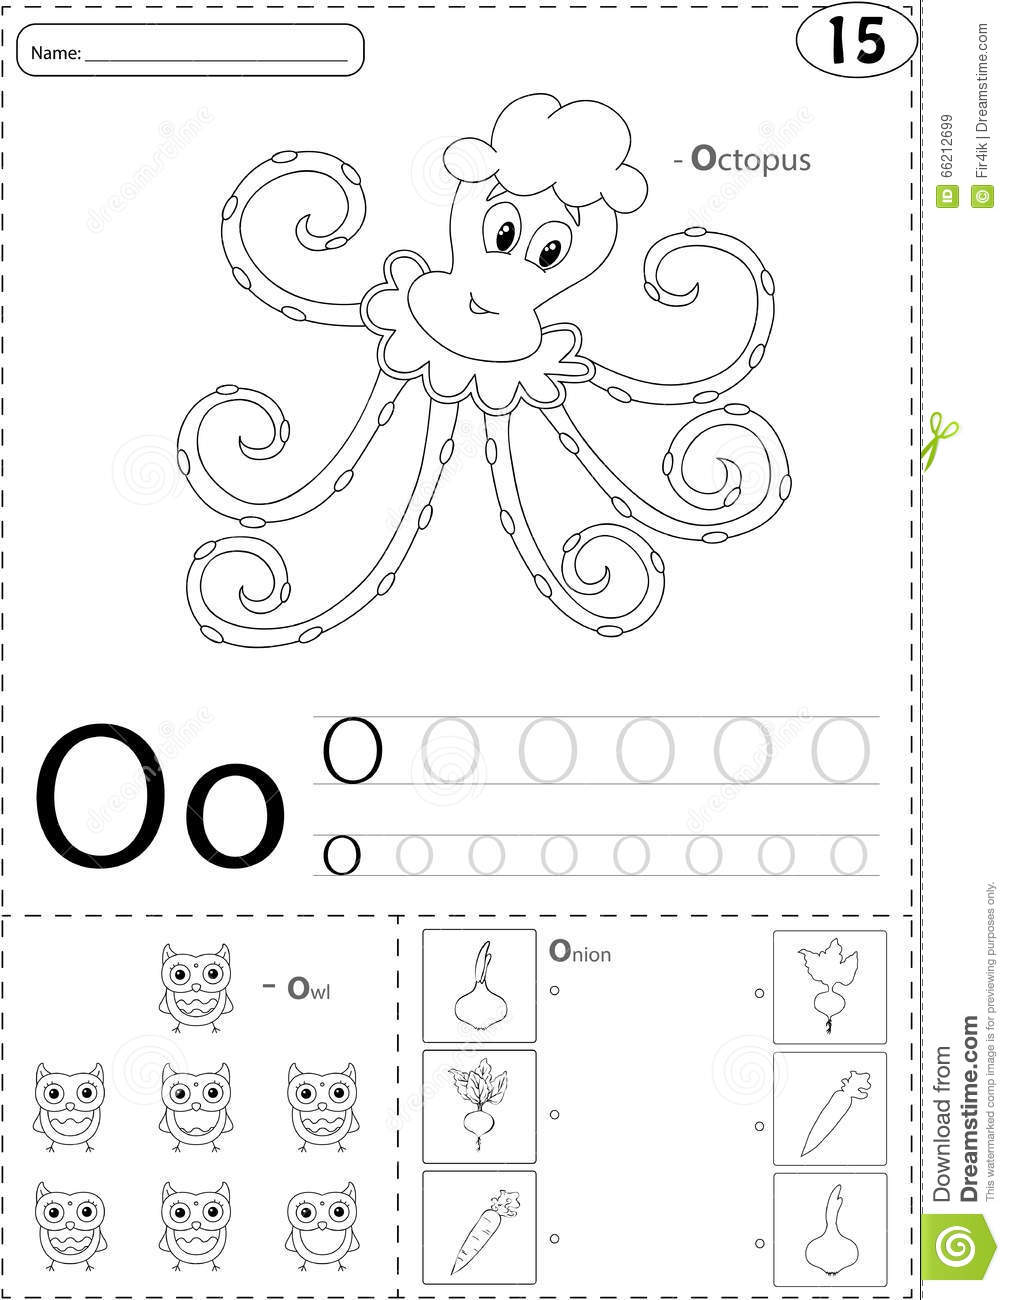 Cartoon Octopus, Owl And Onion. Alphabet Tracing Worksheet ...